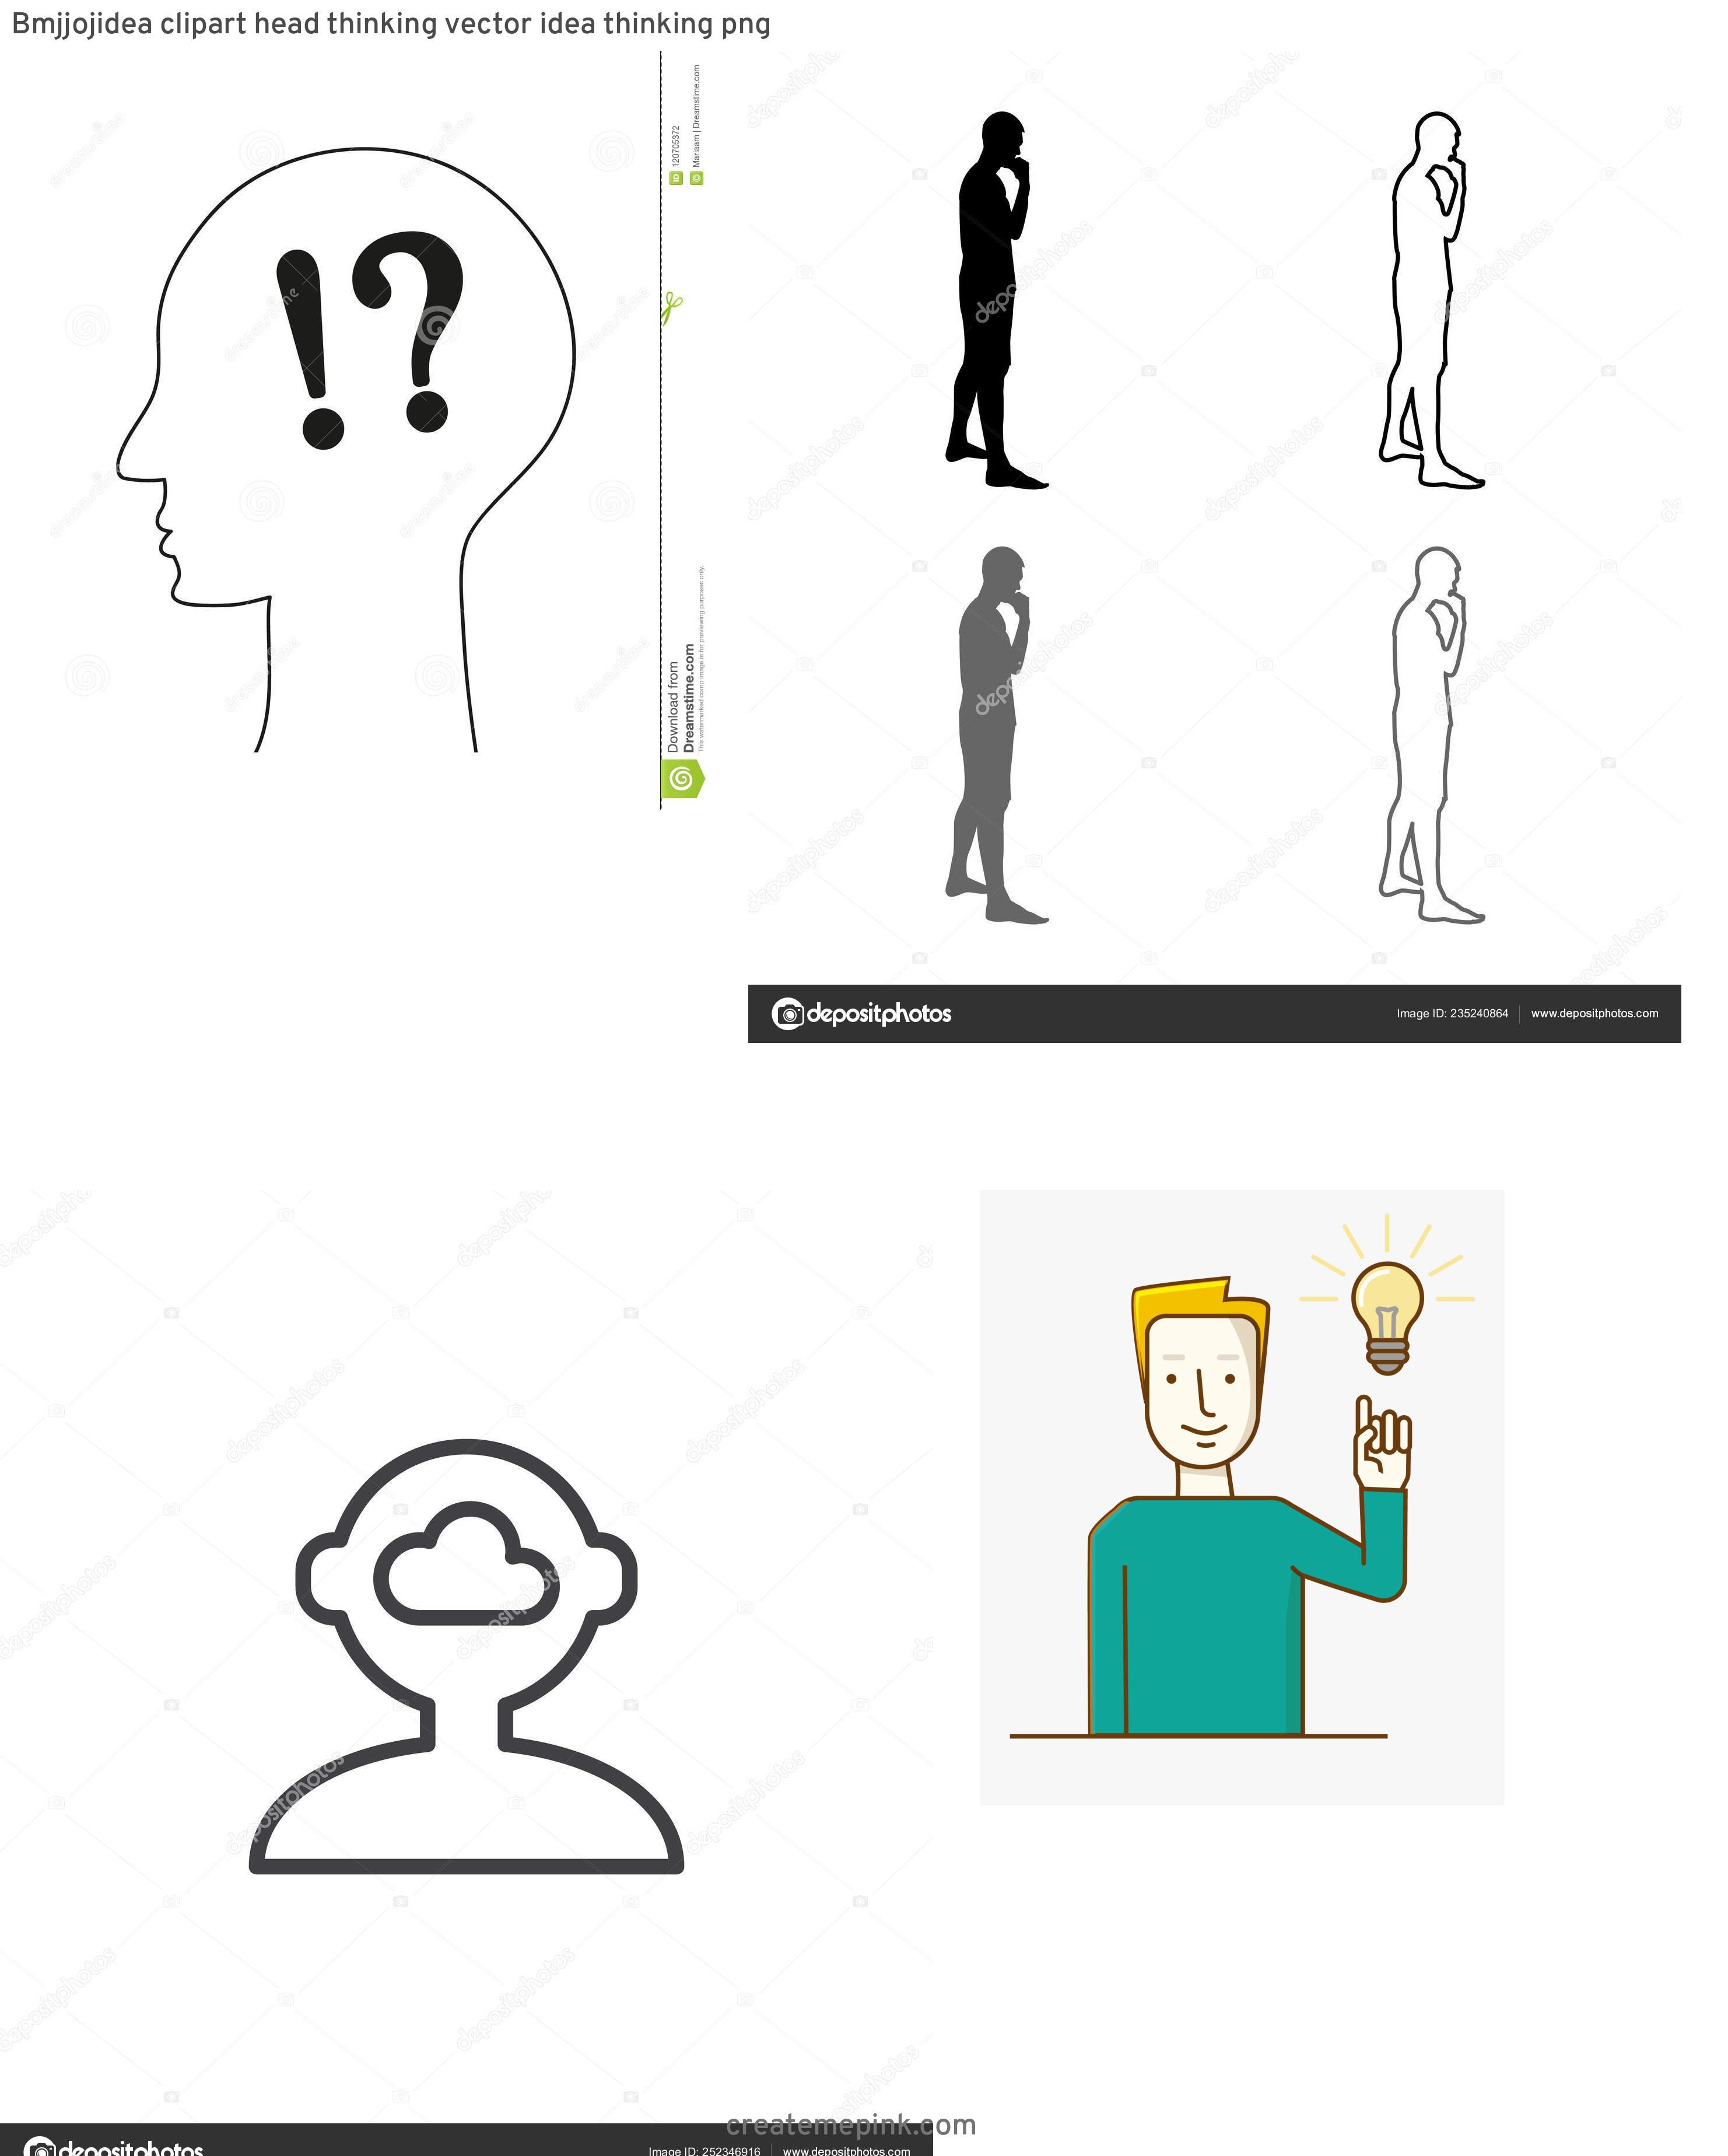 Person Thinking Outline Vector: Bmjjojidea Clipart Head Thinking Vector Idea Thinking Png